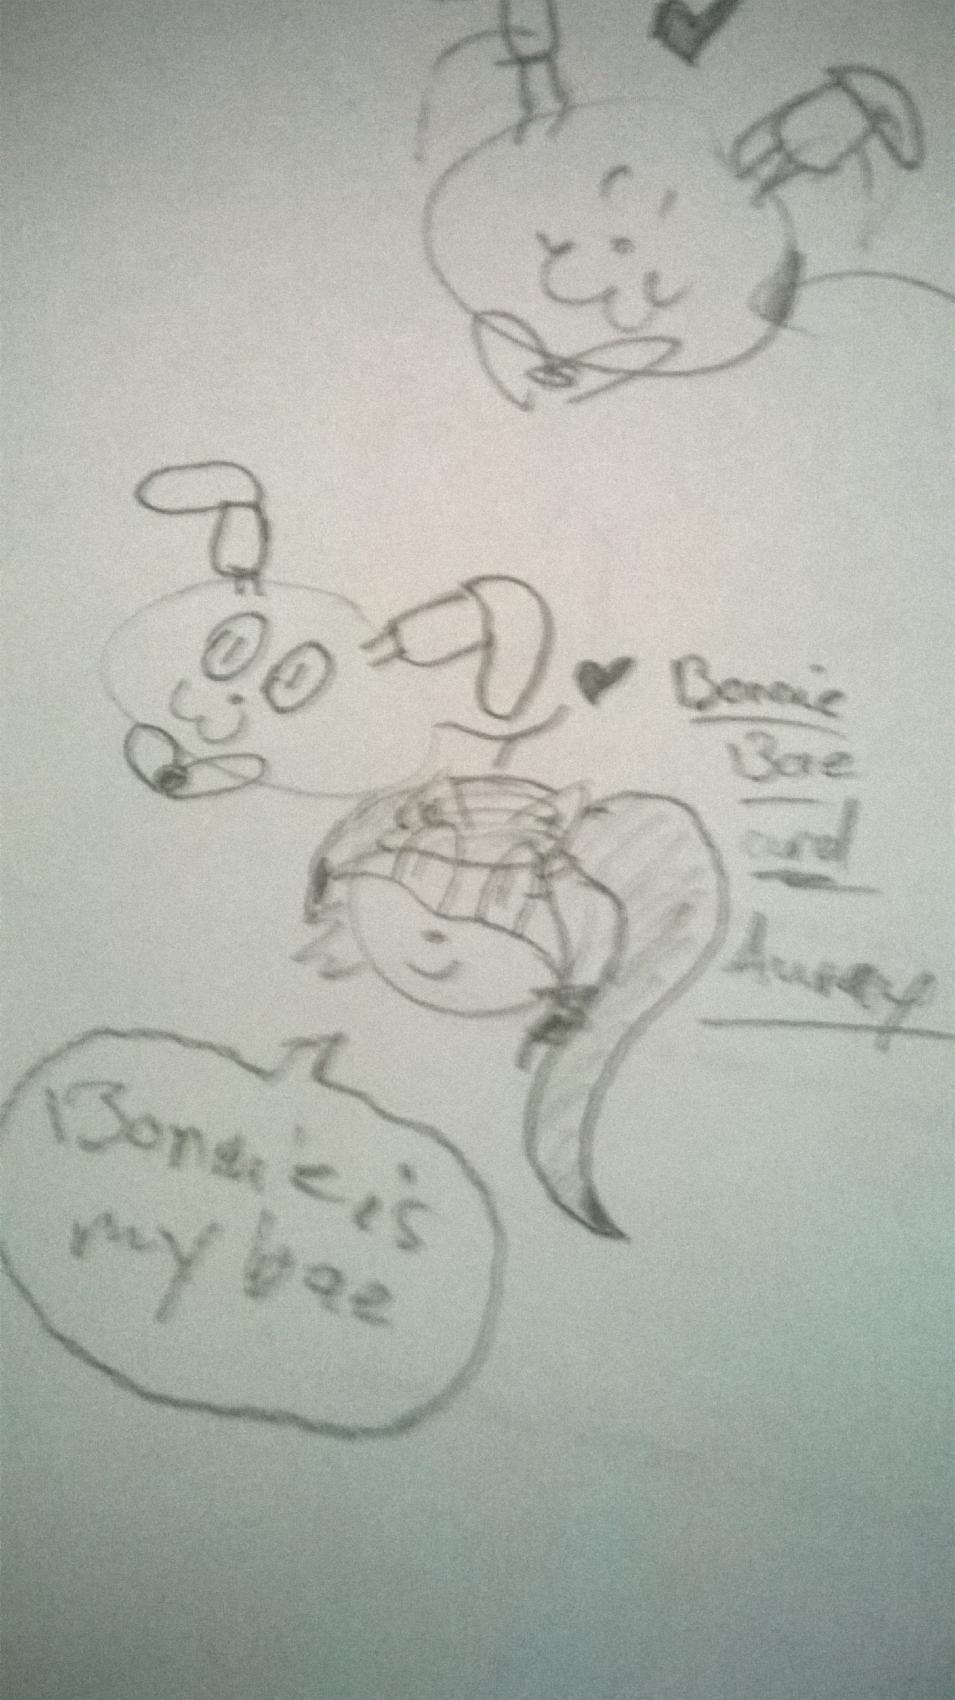 Bonnie x Aurey (lol pls don't pick this one xD I only call him my bae cause I like him a lot :3 pic is weird btw!)